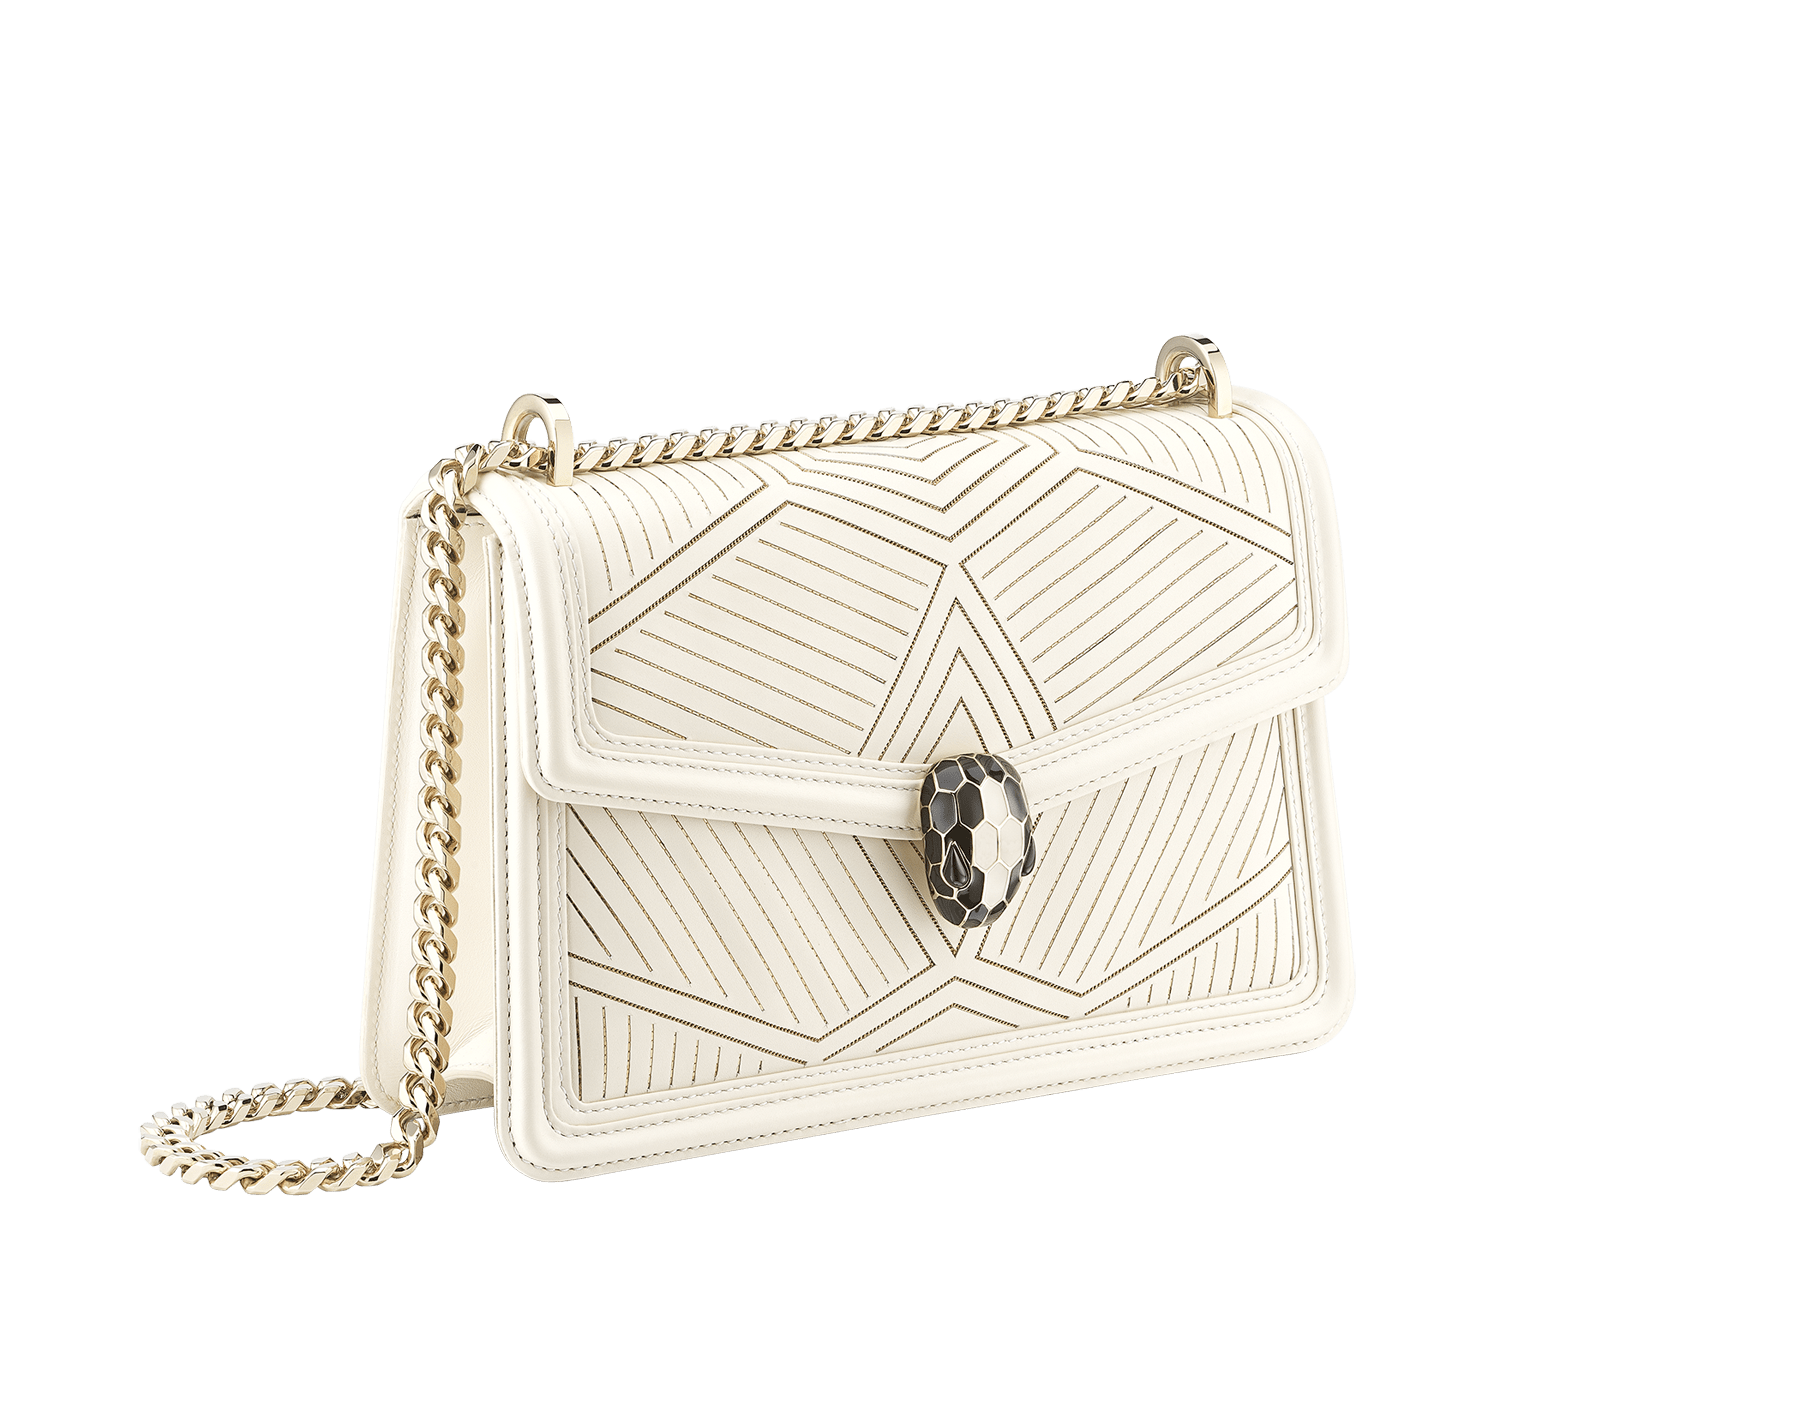 """Serpenti Diamond Blast"" shoulder bag in white agate calf leather, featuring a Whispy Chain motif in light gold finishing. Iconic snakehead closure in light gold plated brass enriched with black and white agate enamel and black onyx eyes. 288984 image 2"